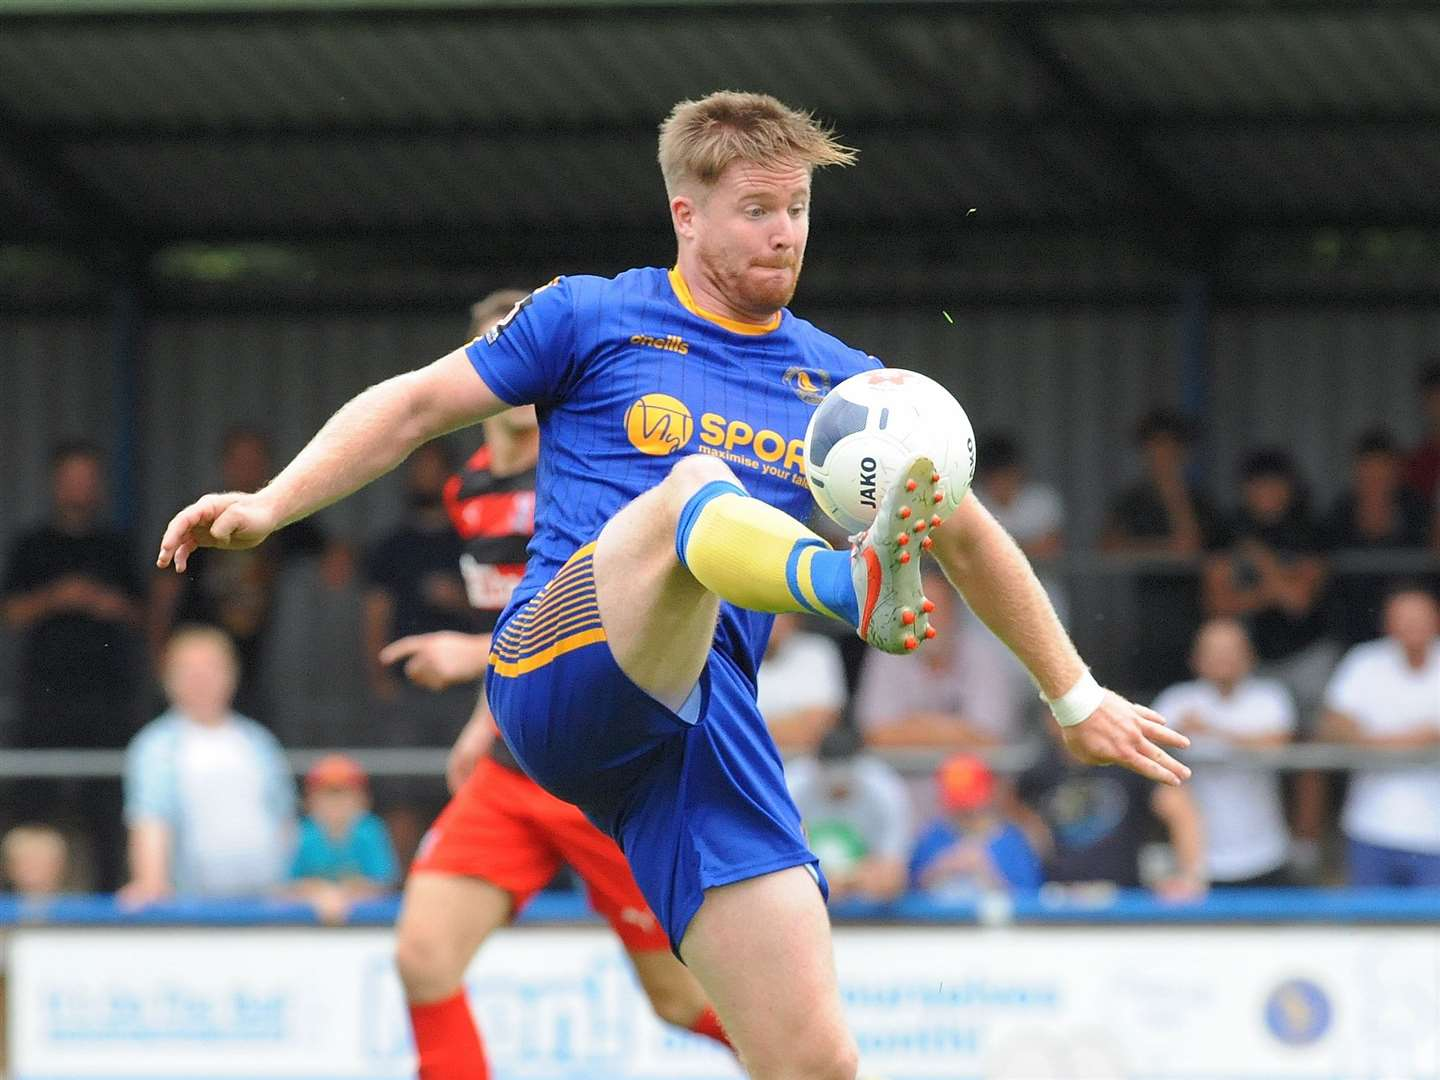 Linnets striker Michael Gash shows his strength. (16002329)